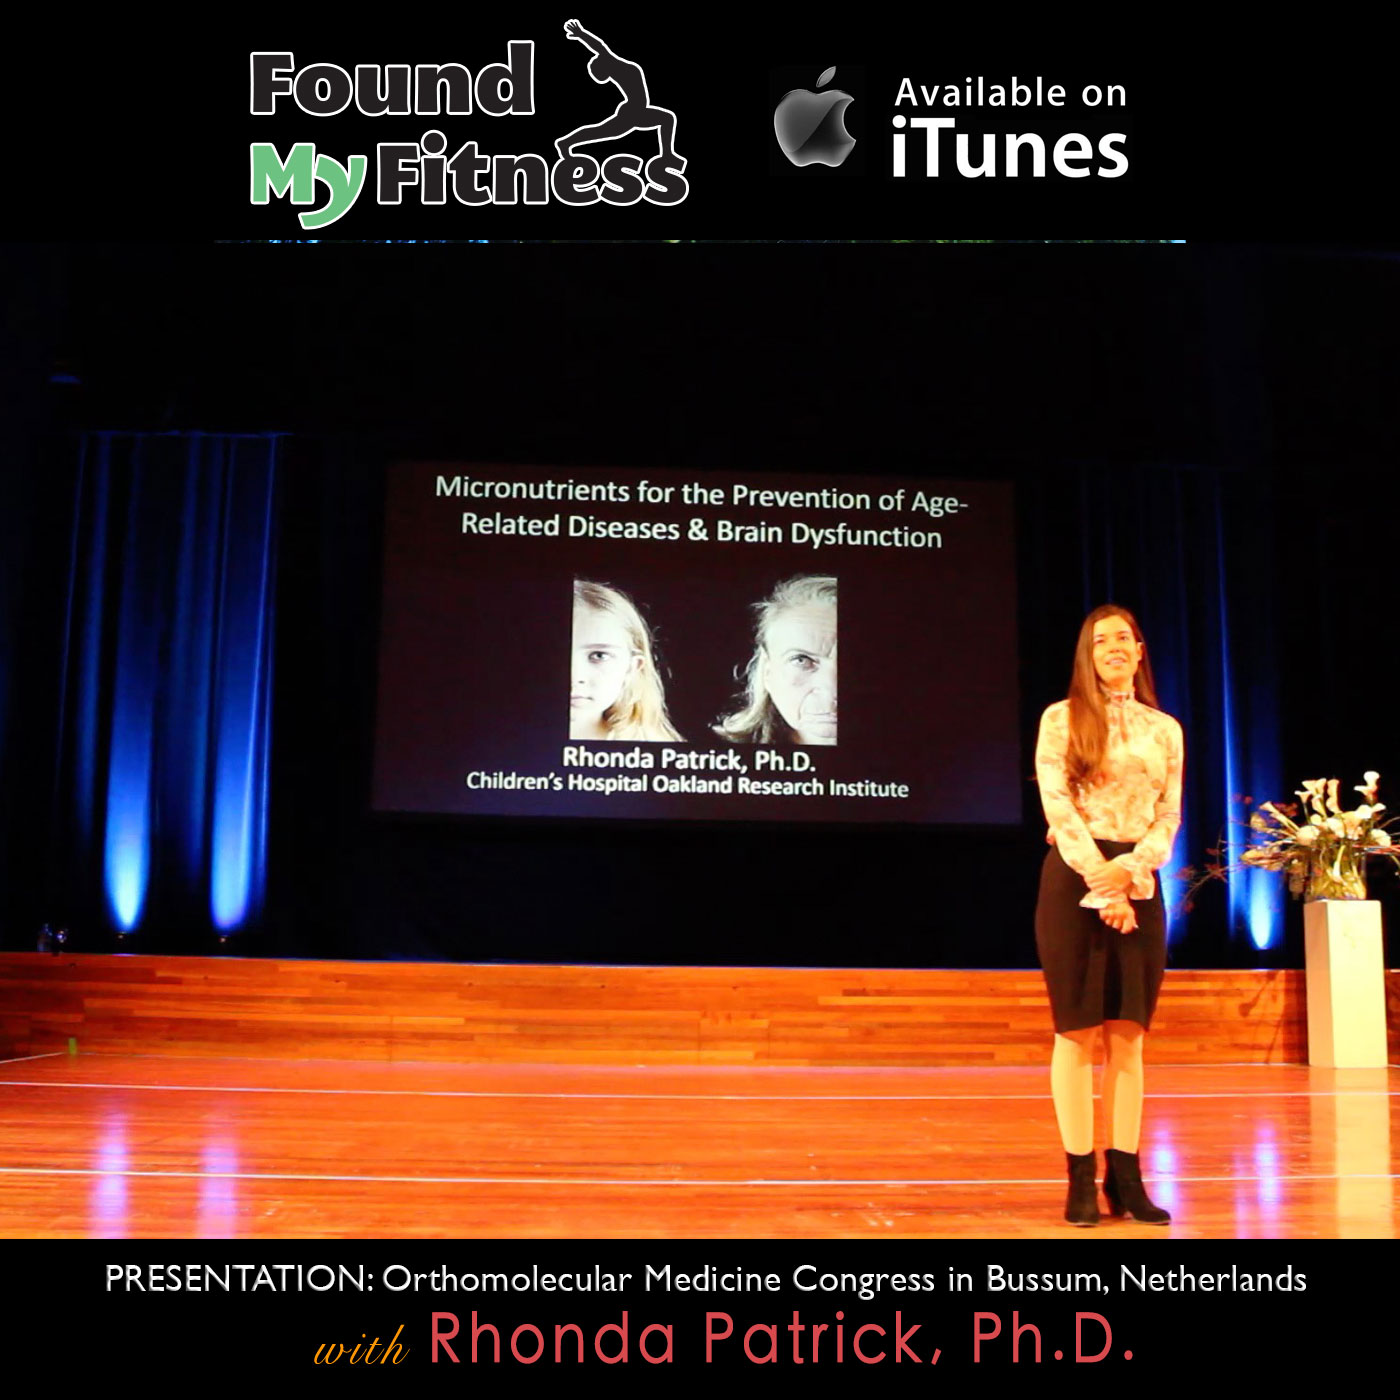 PRESENTATION: Rhonda Speaks at the Orthomolecular Congress in Bussum, Netherlands